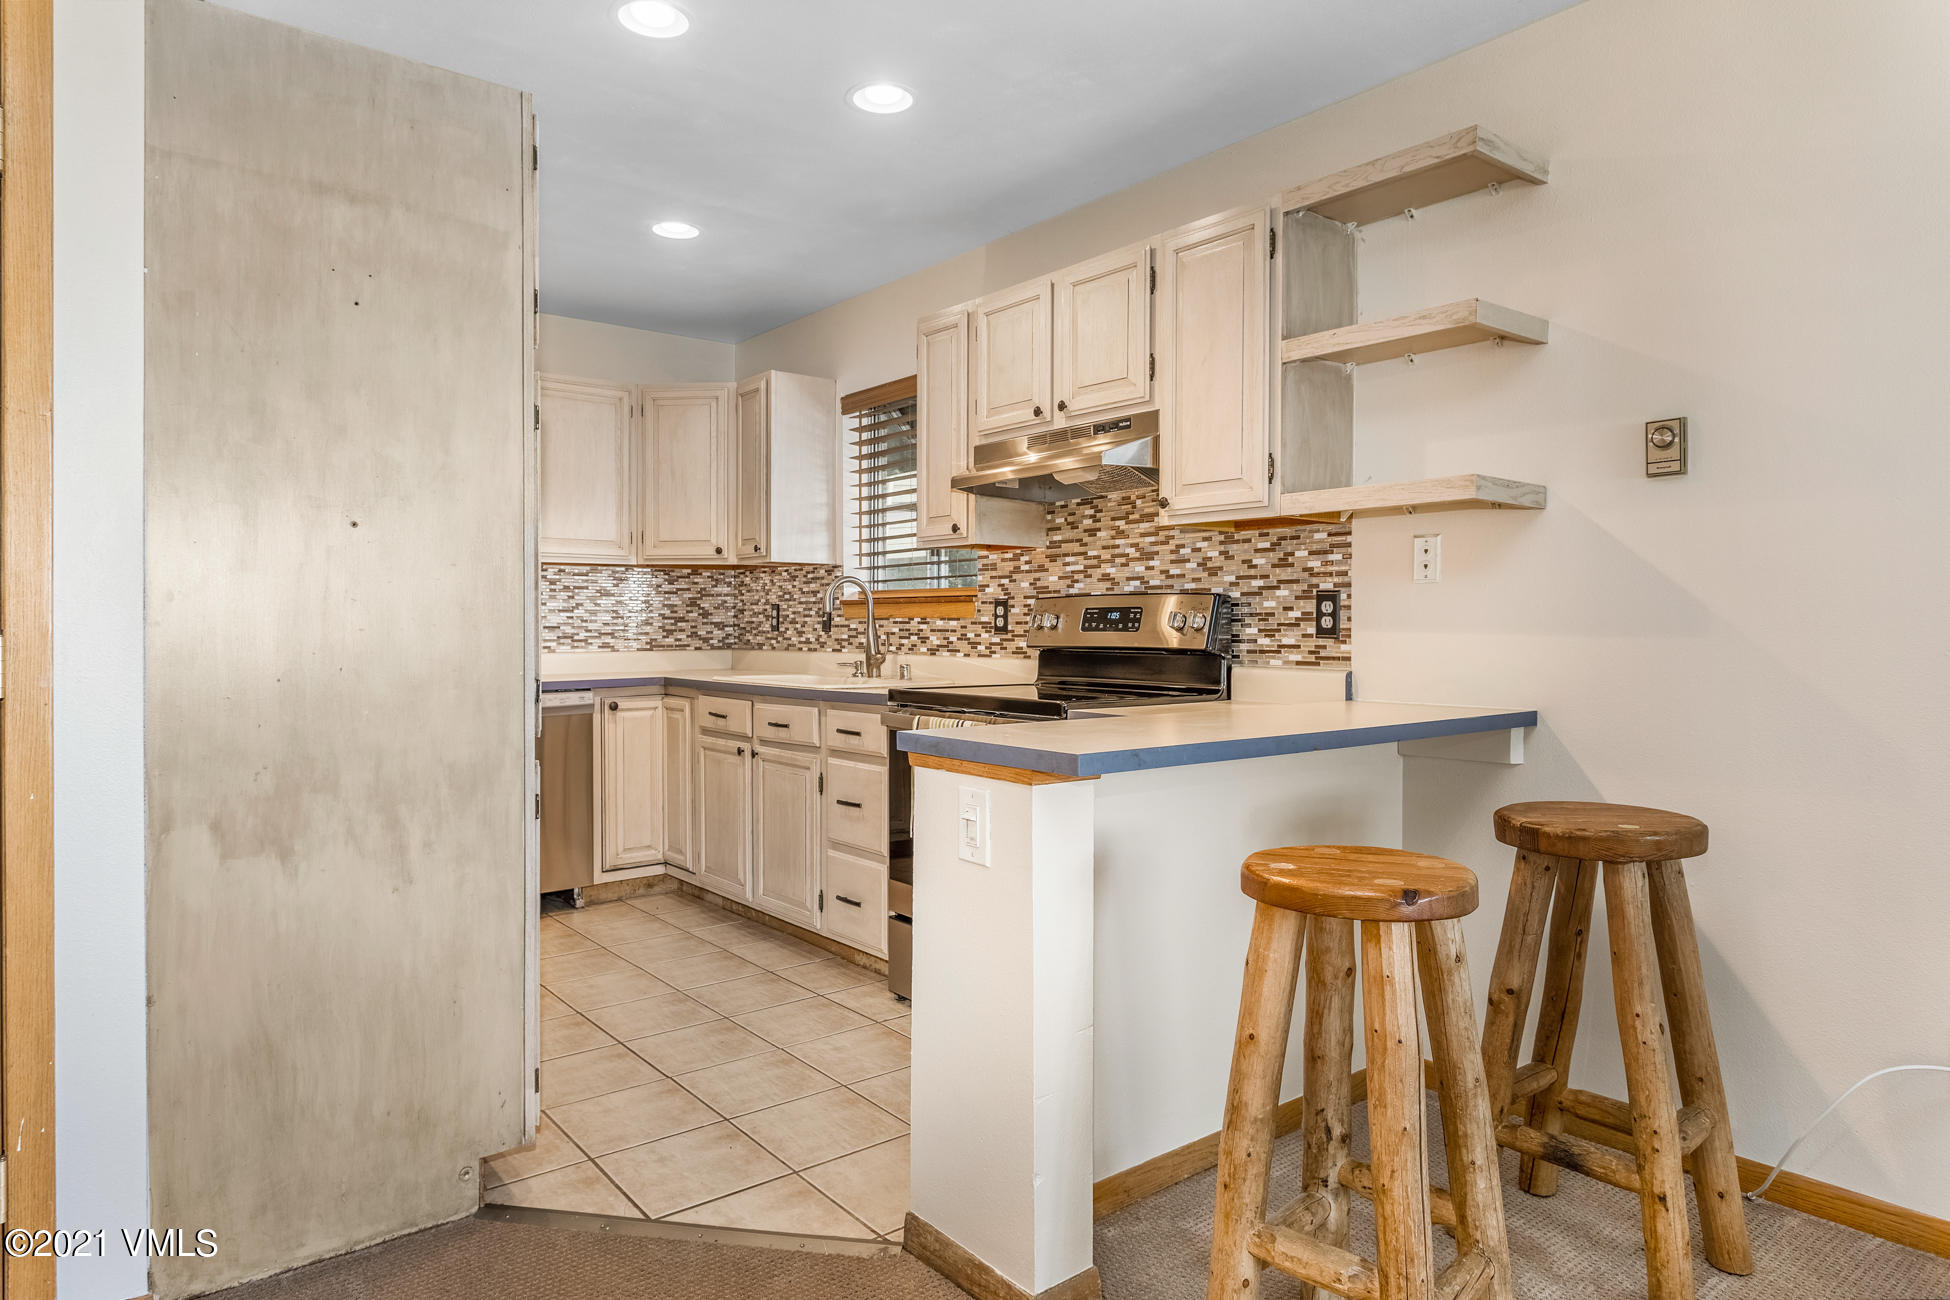 NOT TO BE MISSED- Newly updated, spacious townhome in rarely available lower Homestead neighborhood. Mountain living must-haves include a wood burning fireplace, less than 10 minute drive from Beaver Creek Resort, walking distance from Edwards Riverwalk shopping & dining district, and snow removal included in HOA dues. Featuring a recently updated kitchen with brand new appliances in this easily accessible and pet friendly community that provides all the luxuries of mountainside property, with all the conveniences of small town living.